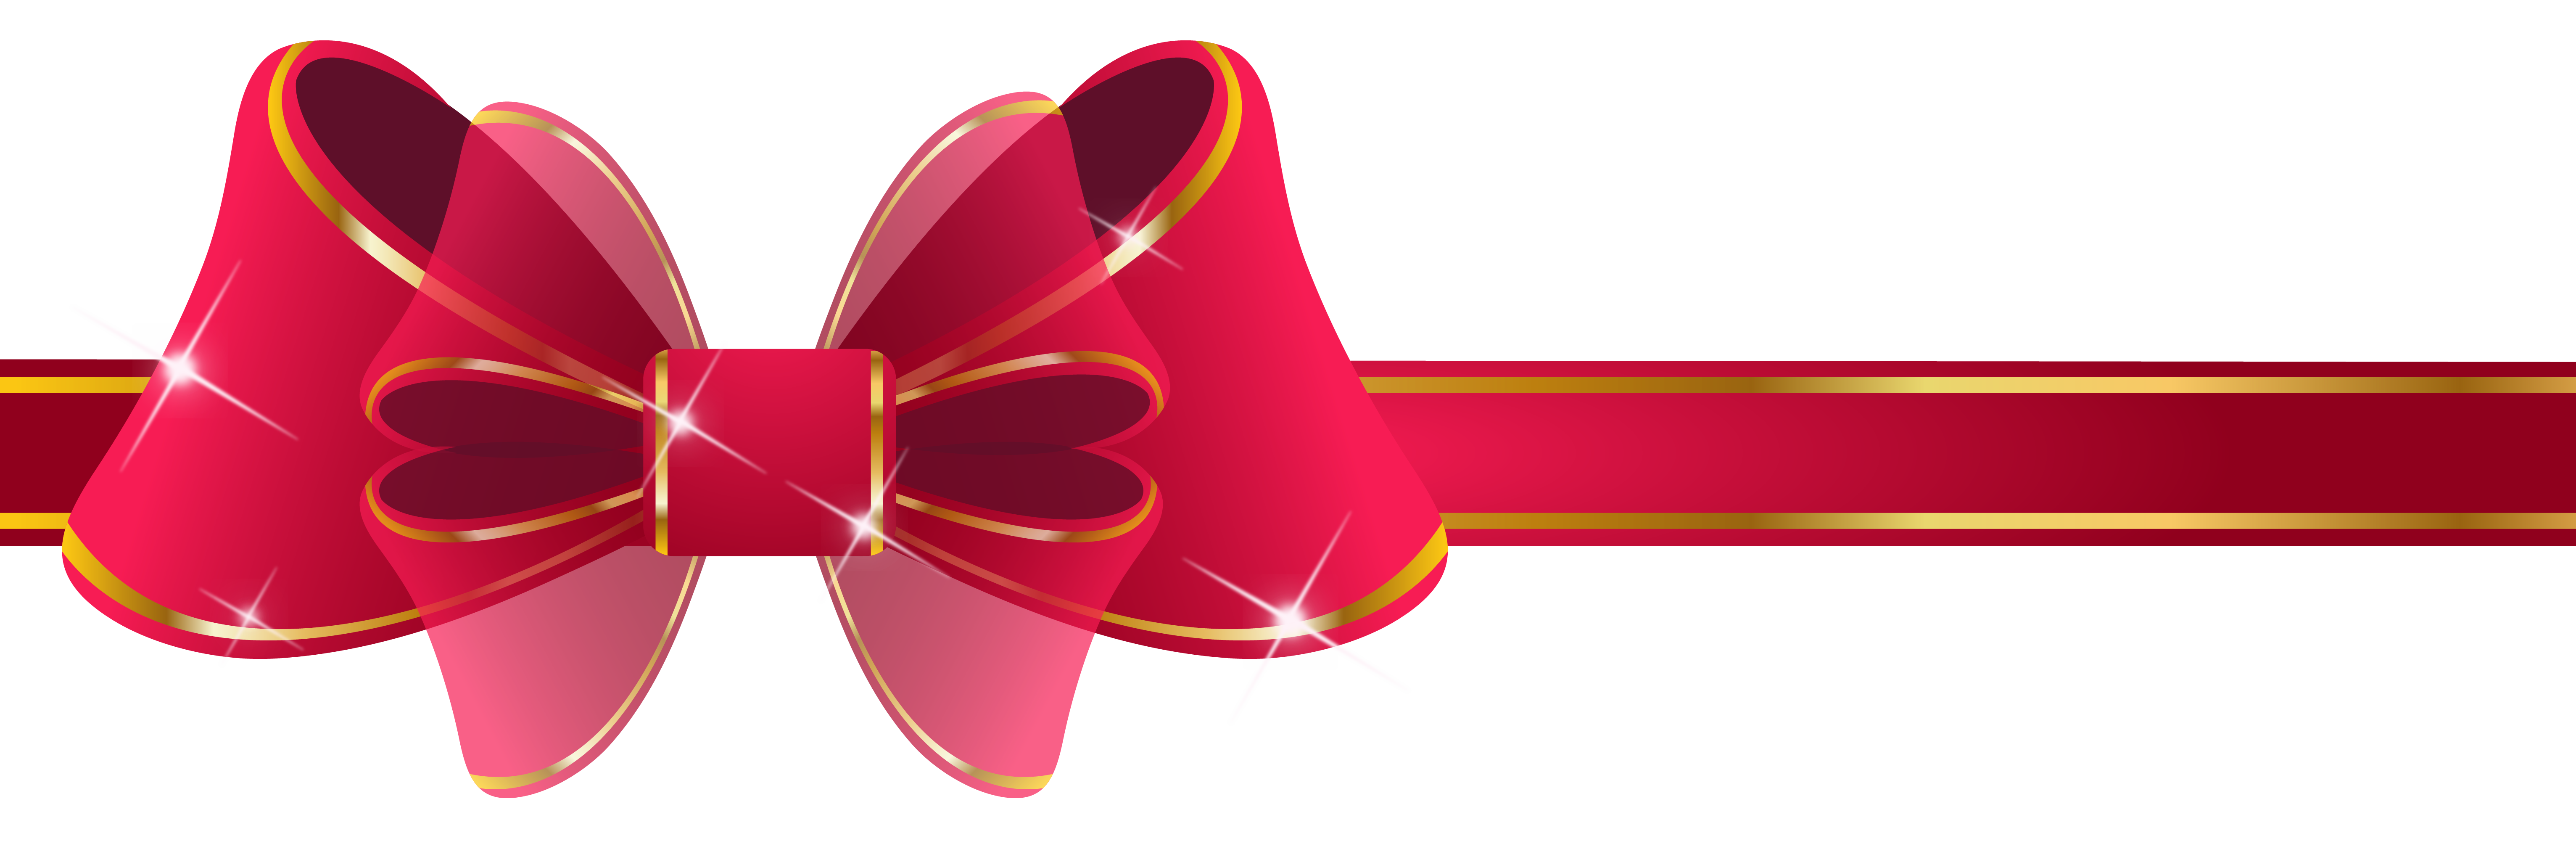 Beautiful Red Ribbon PNG Clipart Image.